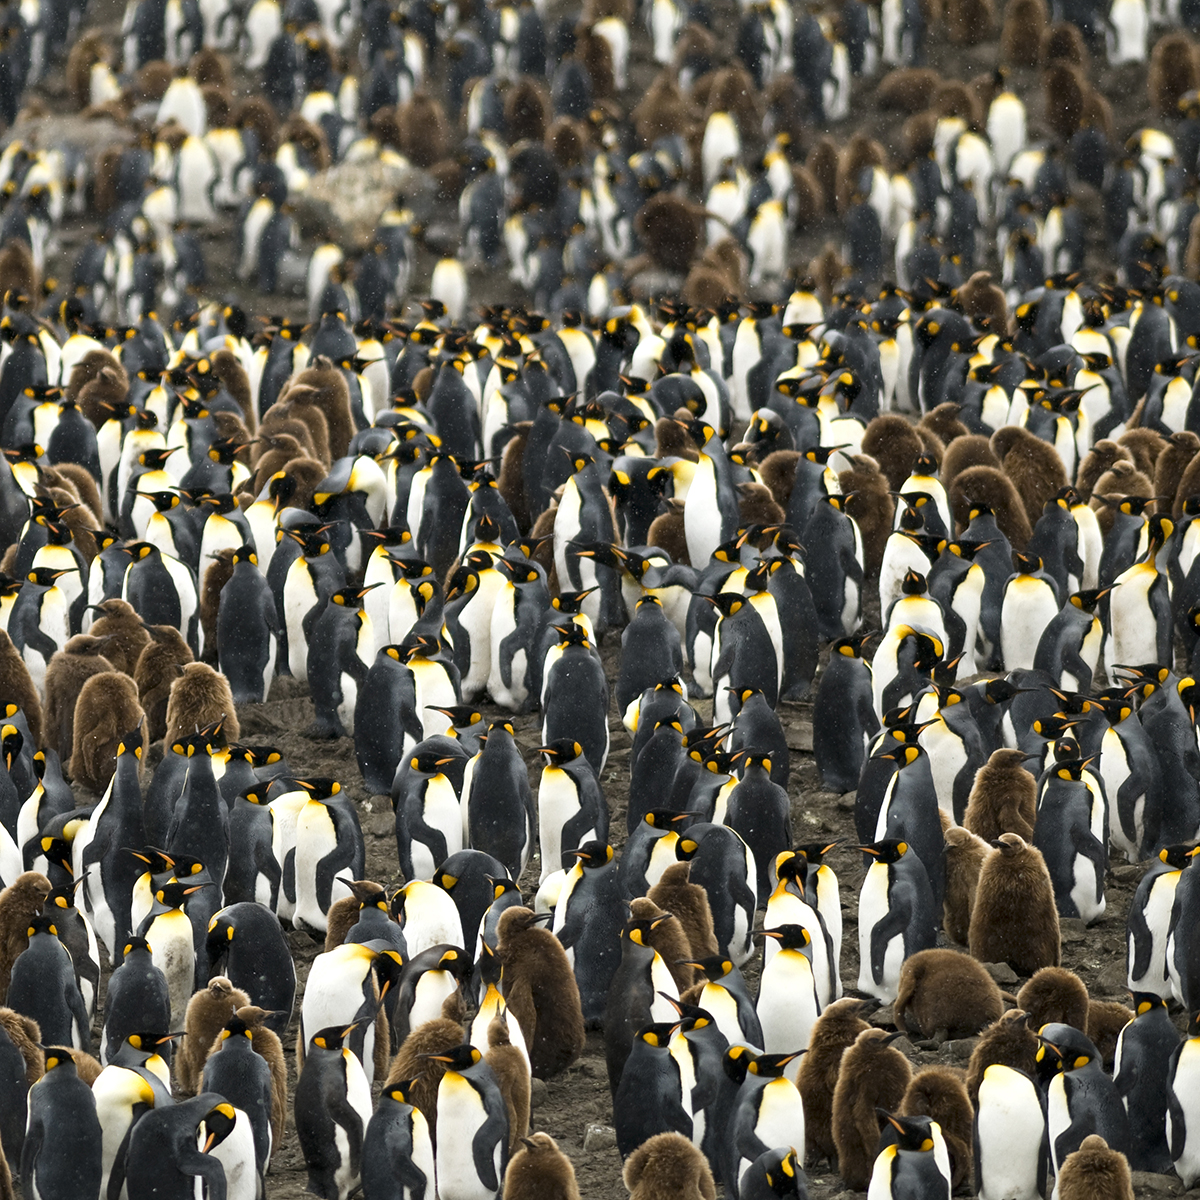 Colony of penguins